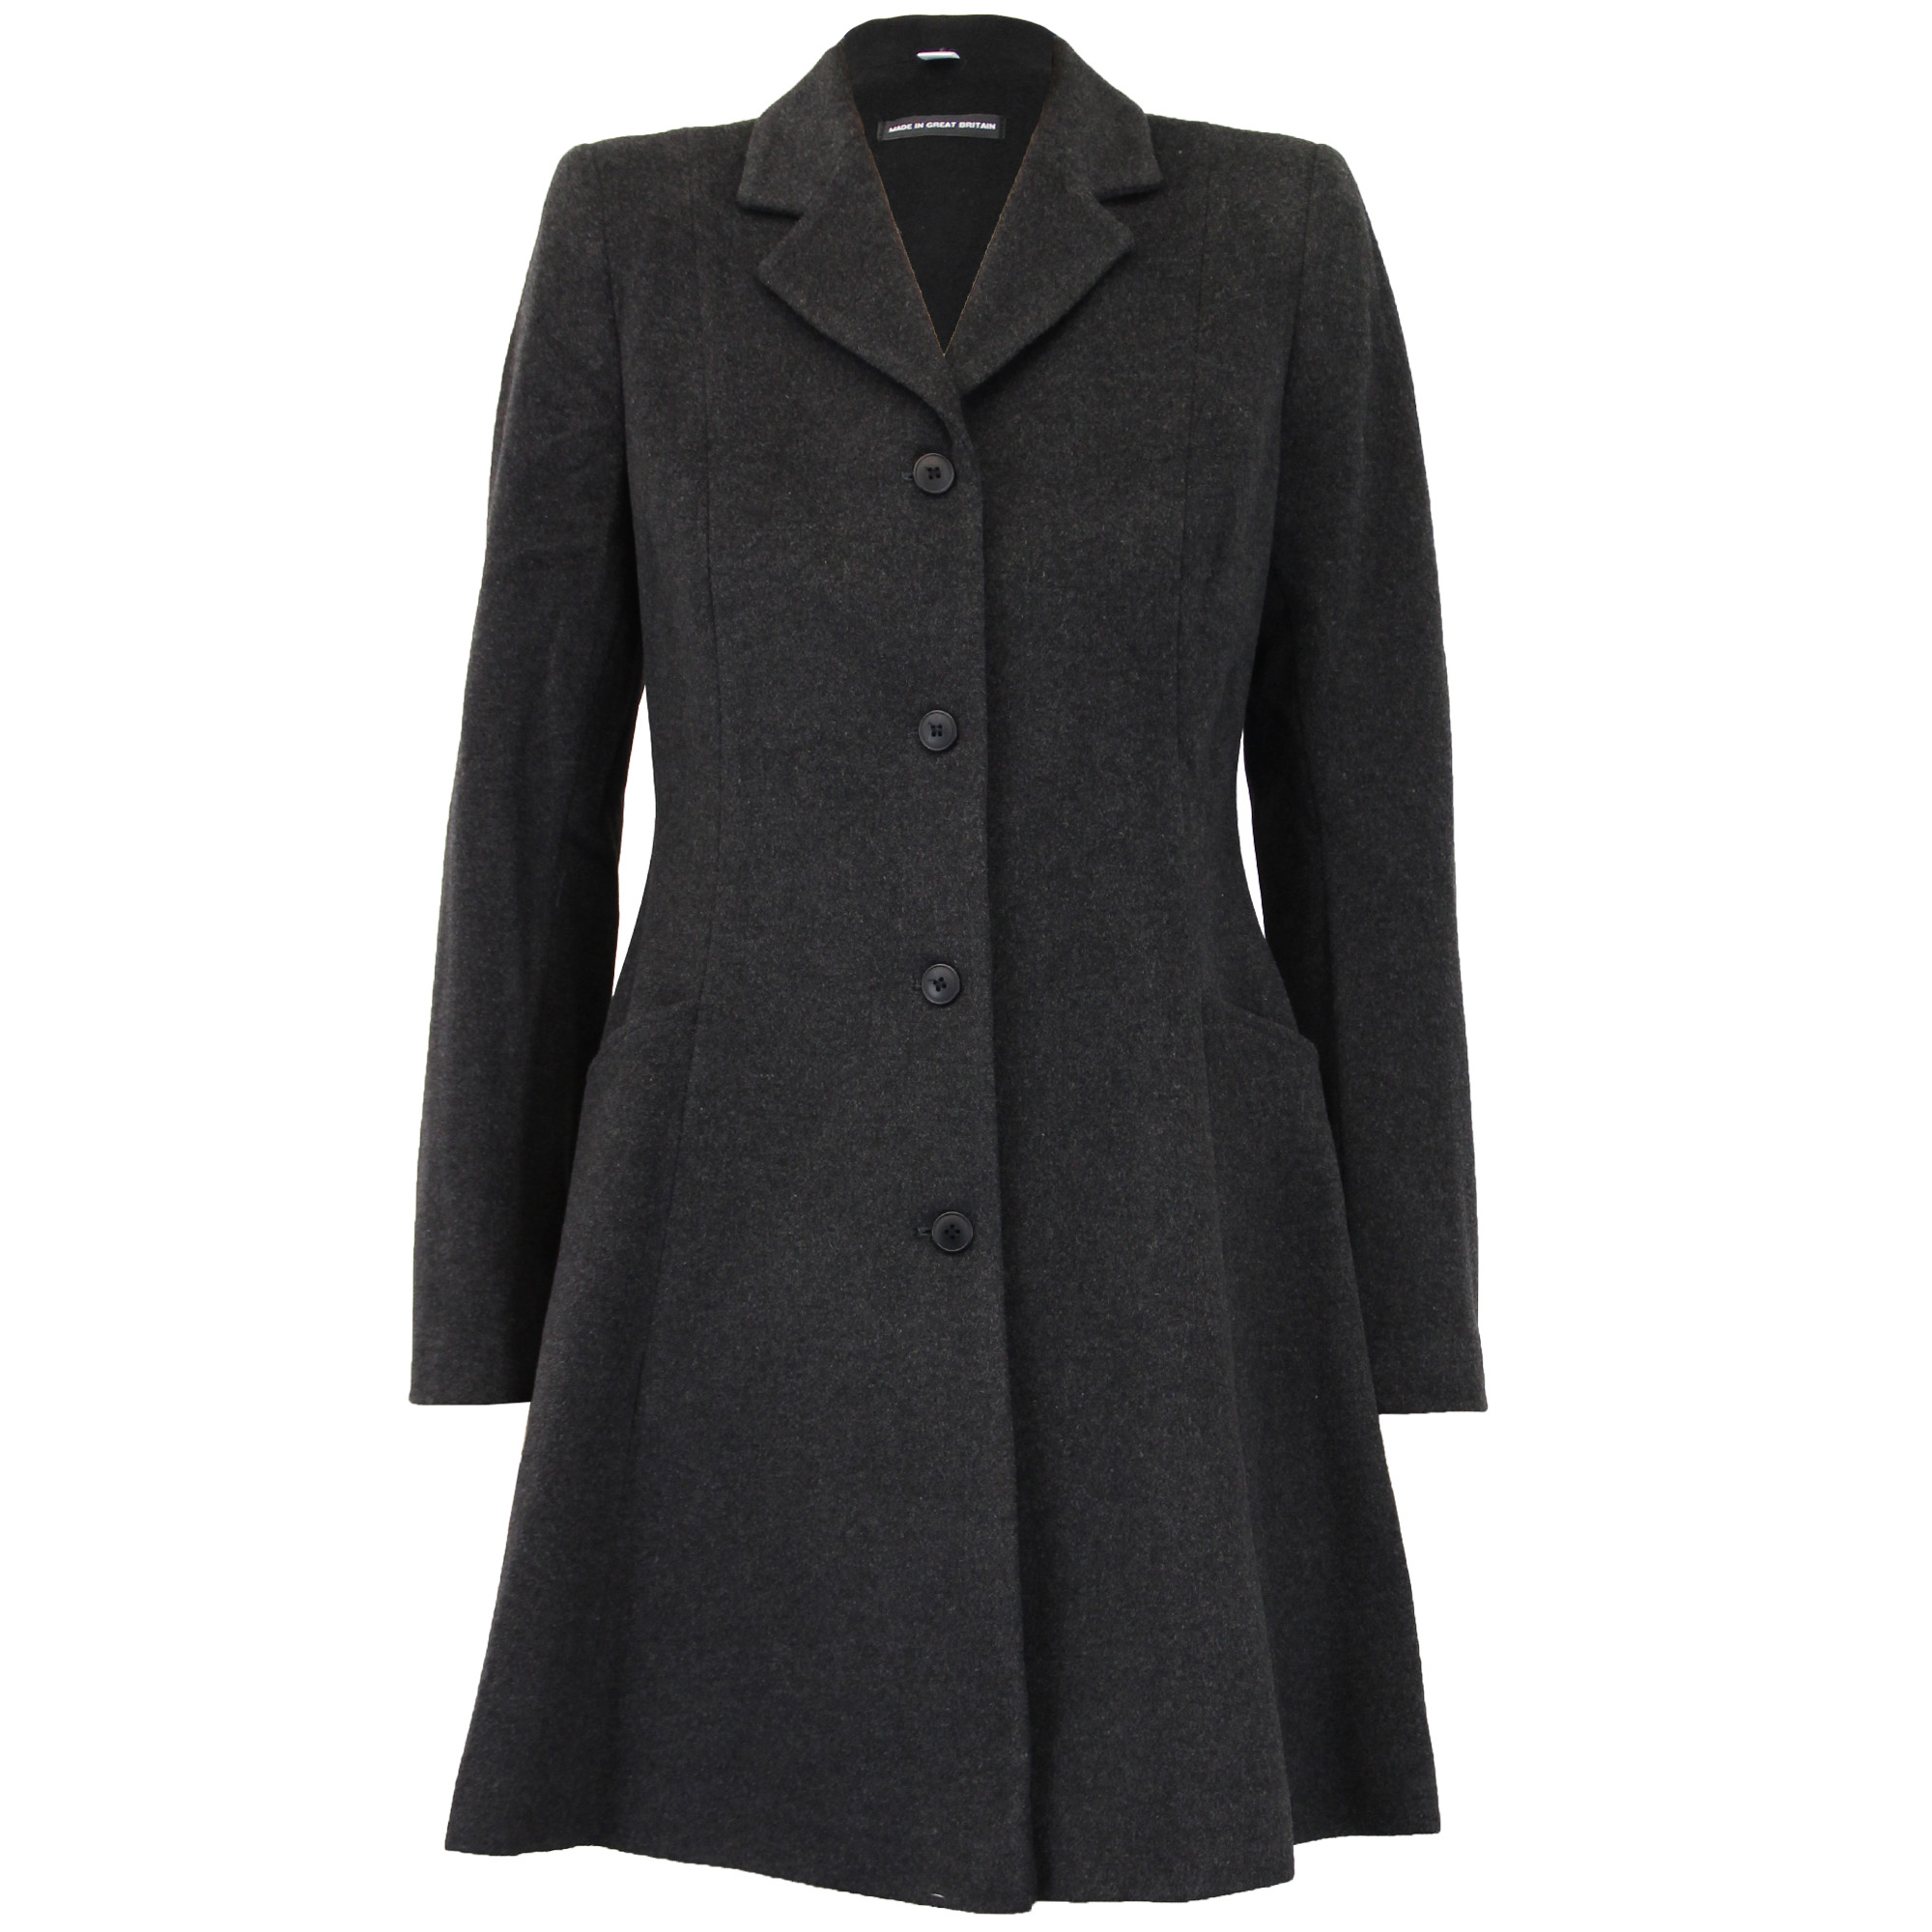 Women's Long Winter Coats Stay extra warm when cold weather hits with a long winter coat from 0549sahibi.tk! We offer an extensive selection of quality, fashionable women's long winter coats from today's top brands, including The North Face, Spyder, Columbia and Patagonia.